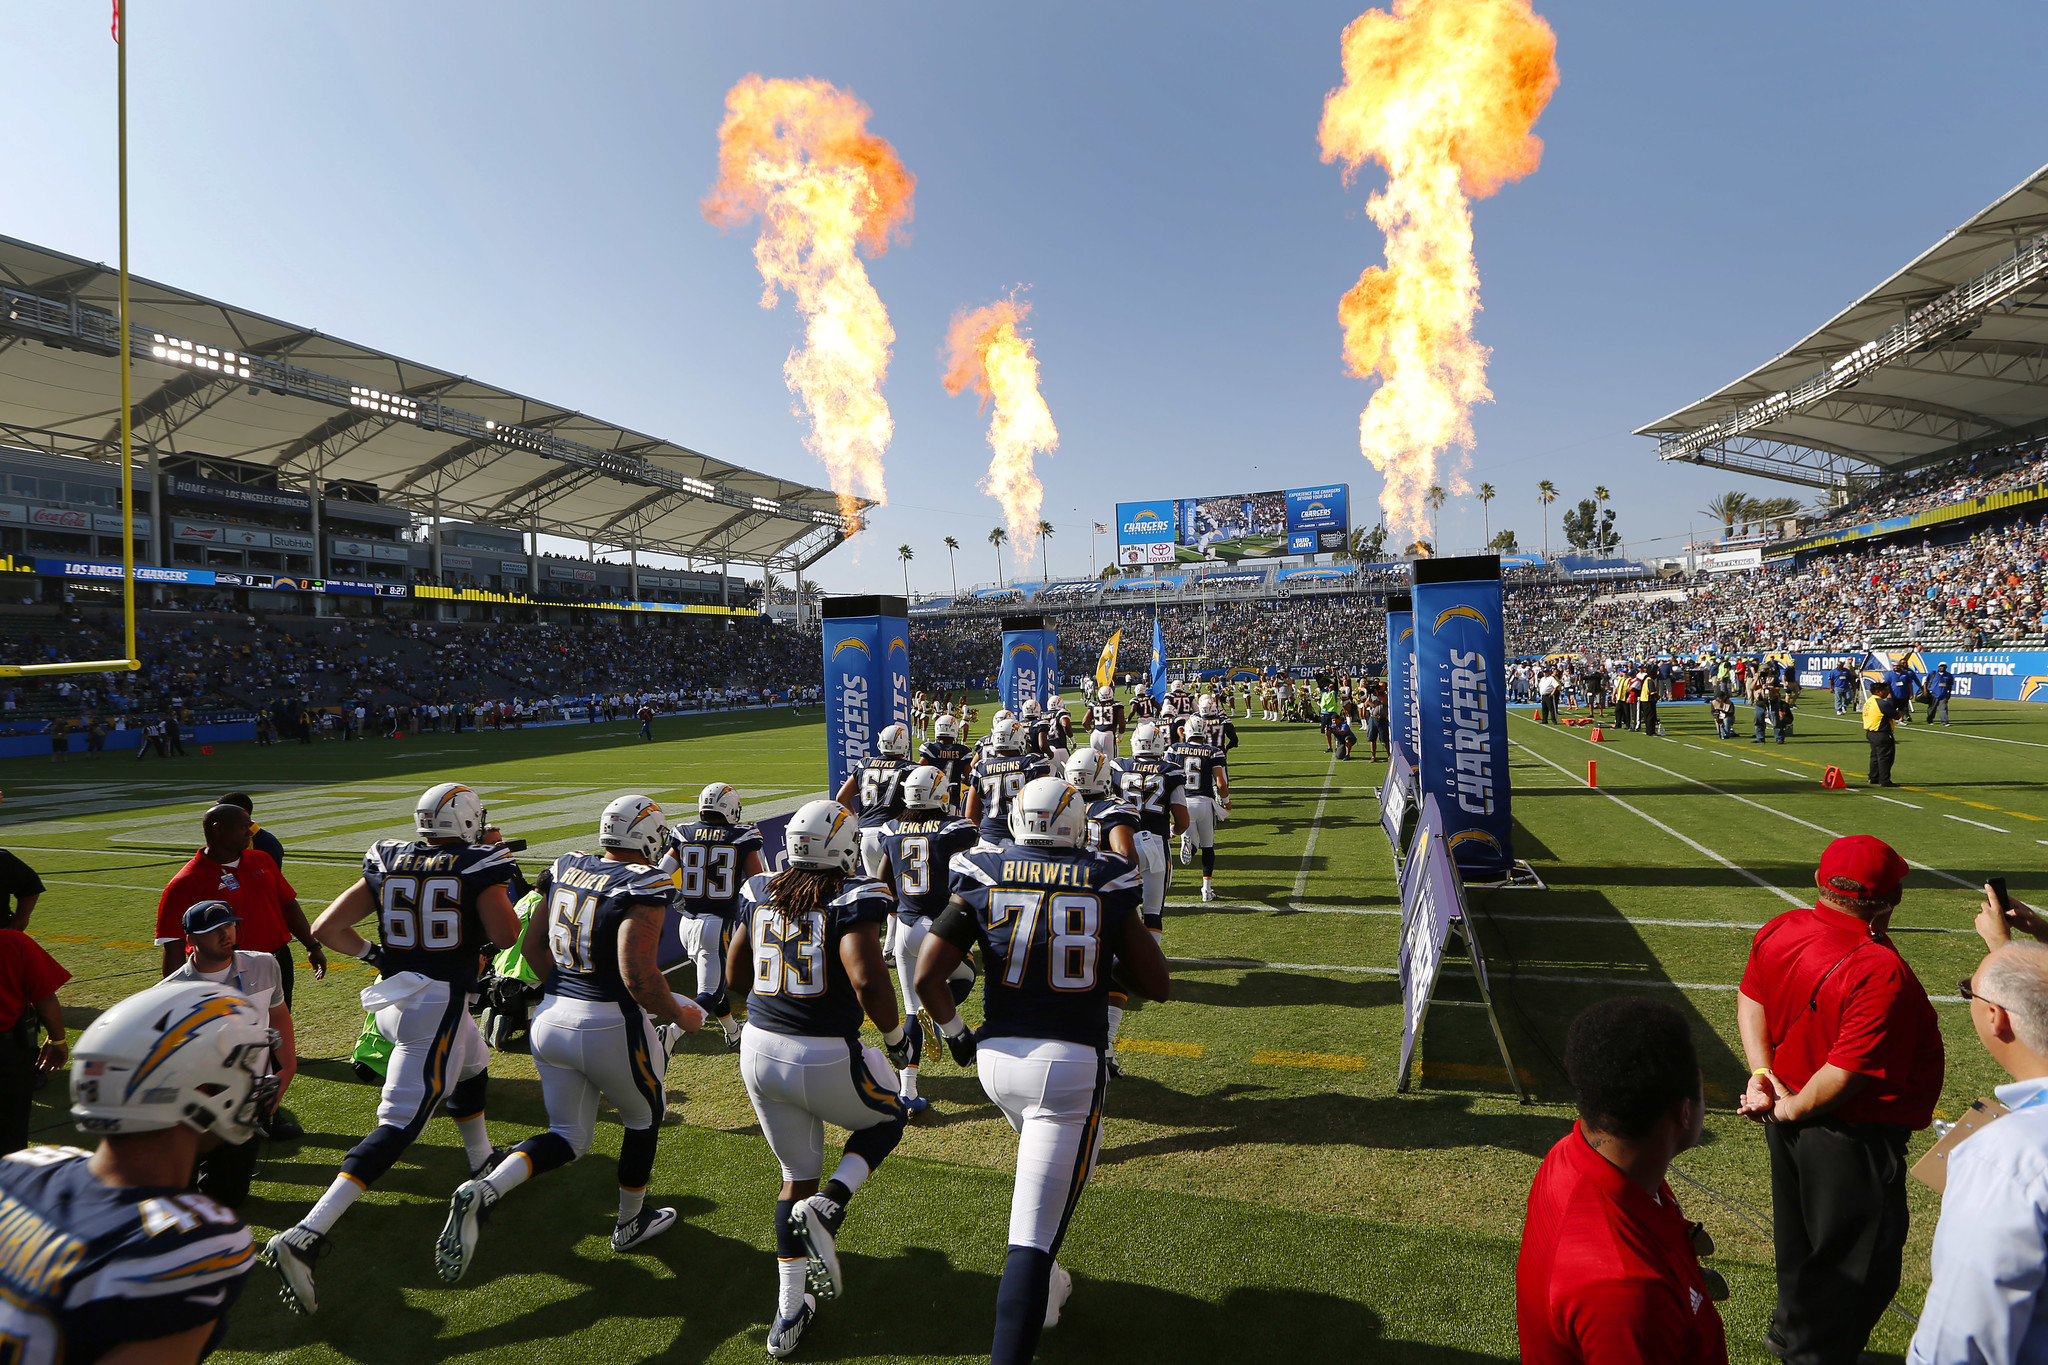 Los Angeles Chargers Vs Seattle Seahawks The San Diego